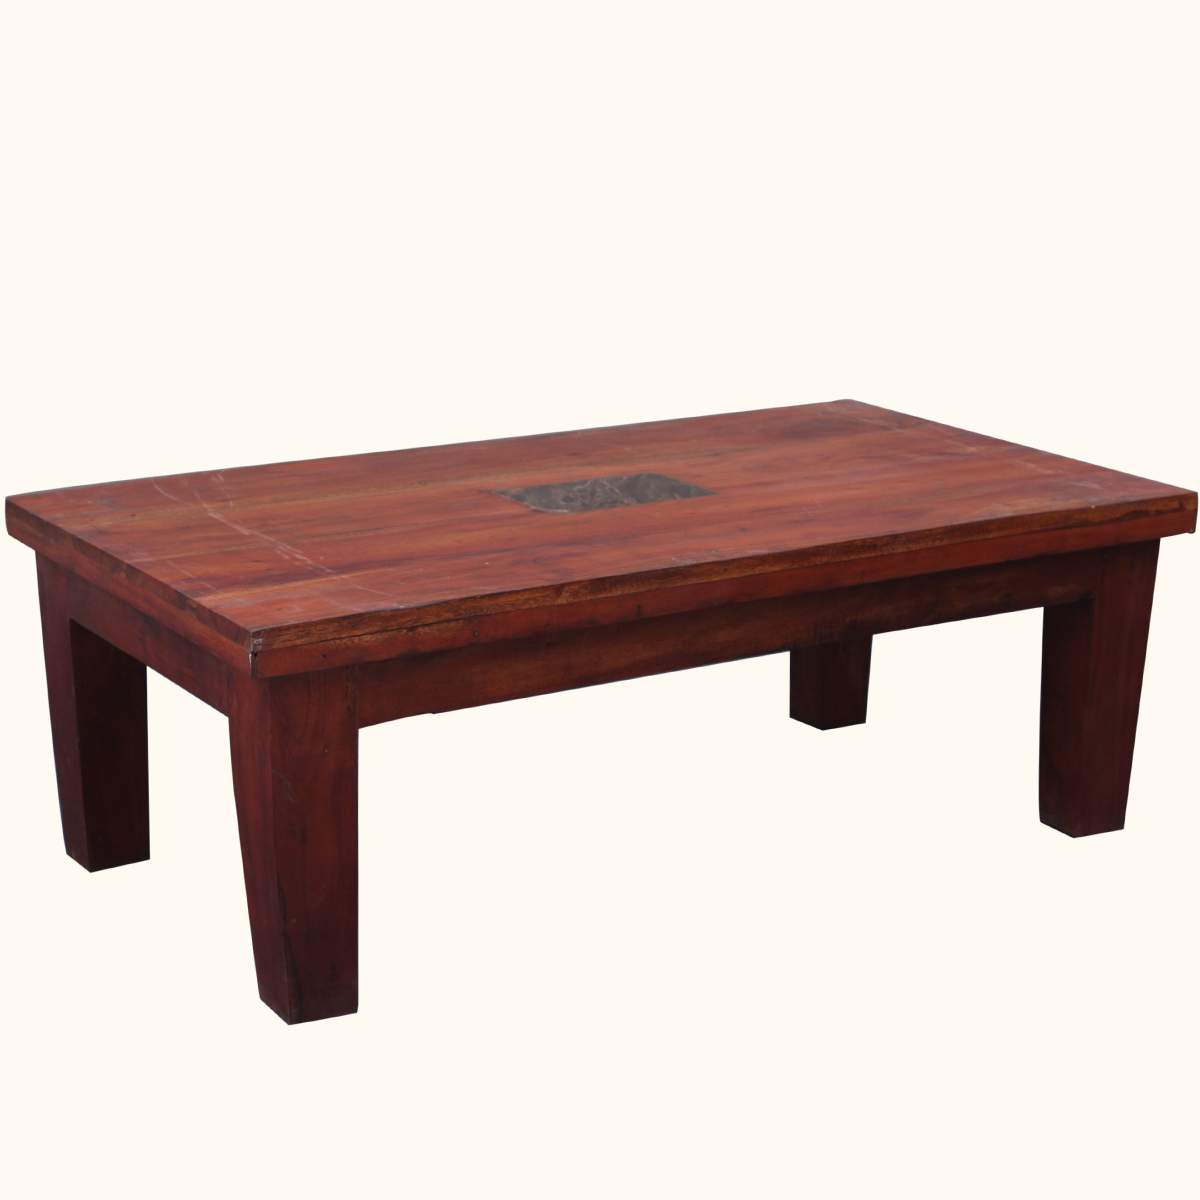 Distressed Wood Coffee Table Winter White Distressed Mango Wood Coffee Table Distressed